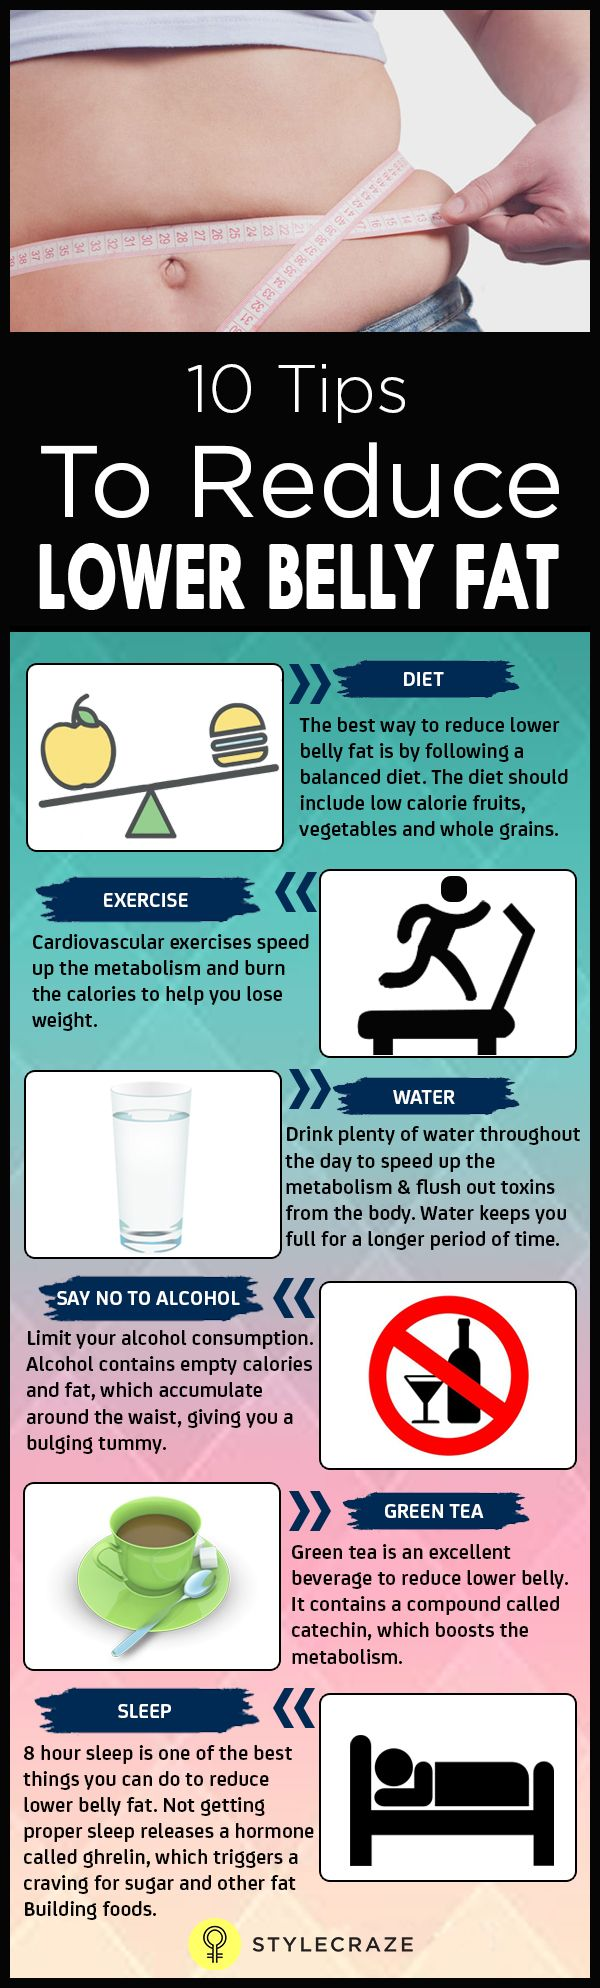 10 Simple Tips To Reduce Lower Belly Fat-The lower belly fat is one of the frustrating issues one can suffer with. Here are some simple ways on how to reduce belly fat which also need dedication